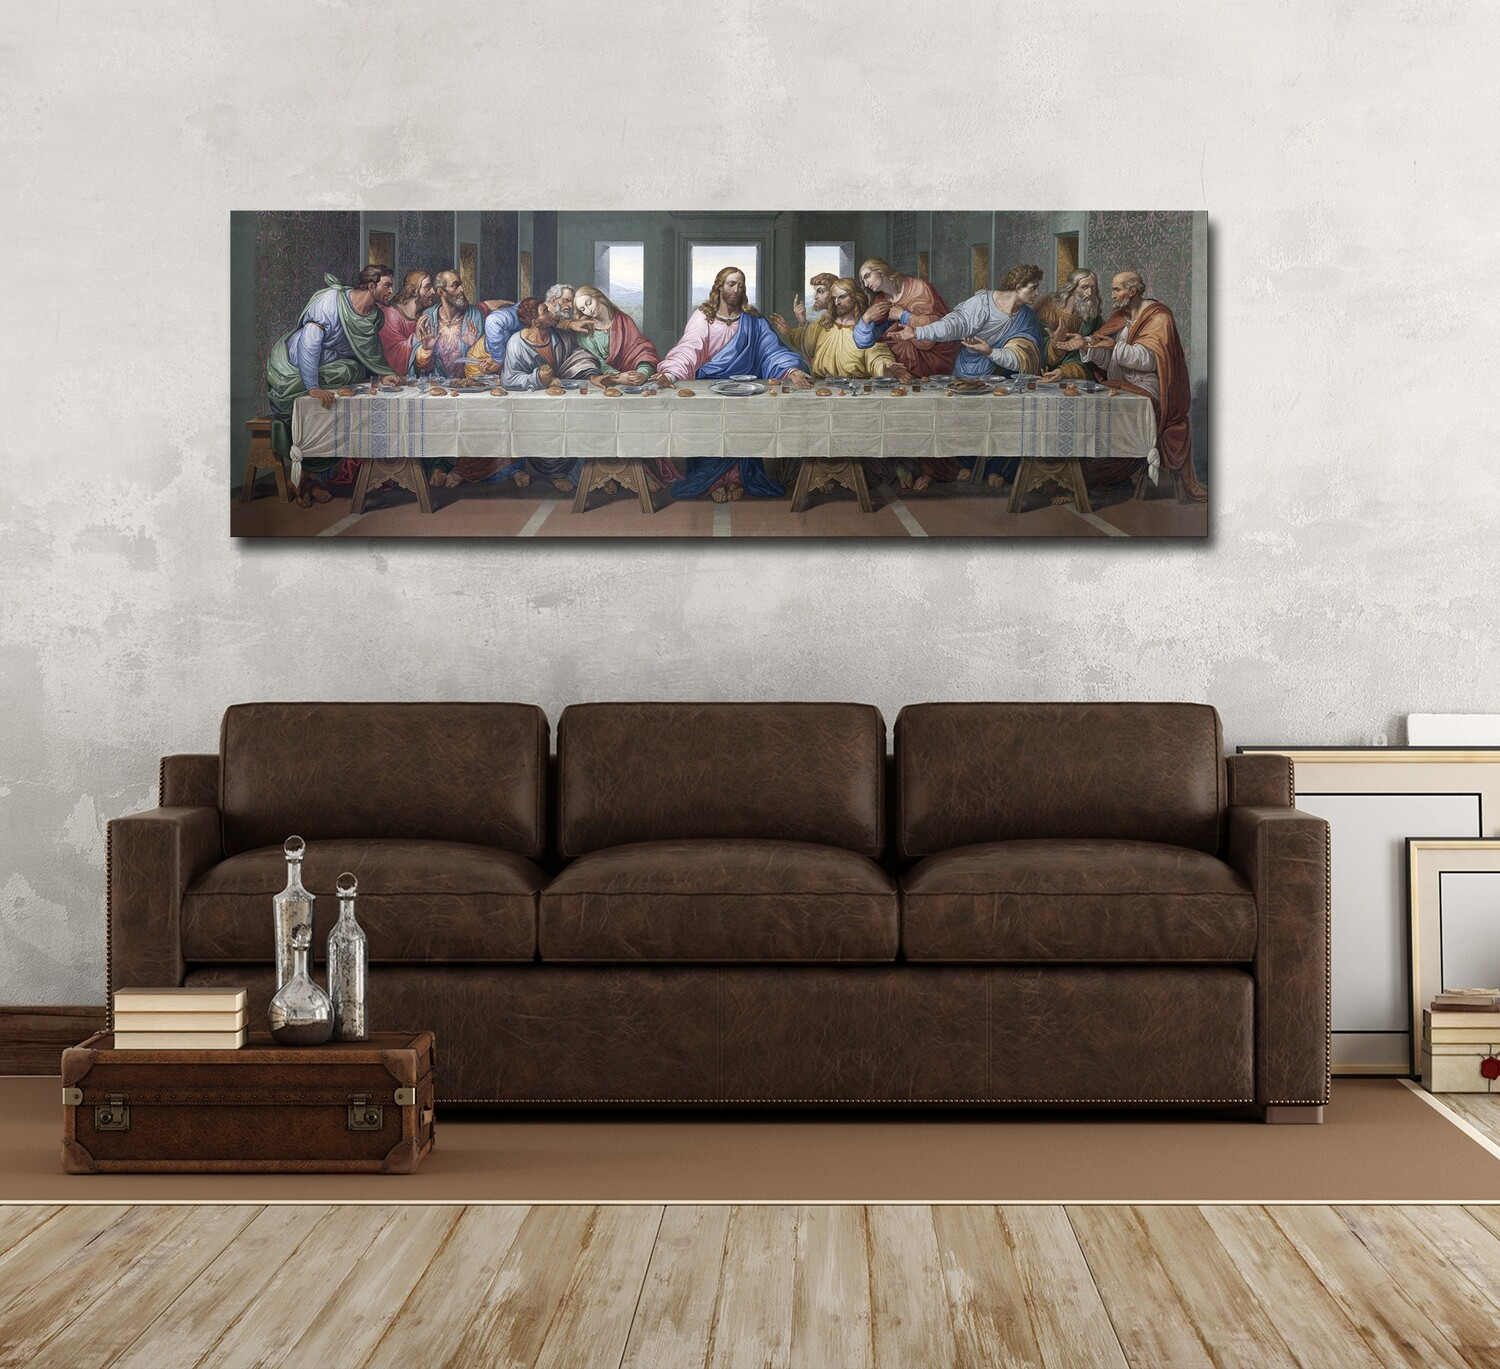 Jesus Last Supper Painting-Christian Wallart -Jesus Divine Mercy Picture Printed on Frameless Acrylic Glass -Ready To Hang